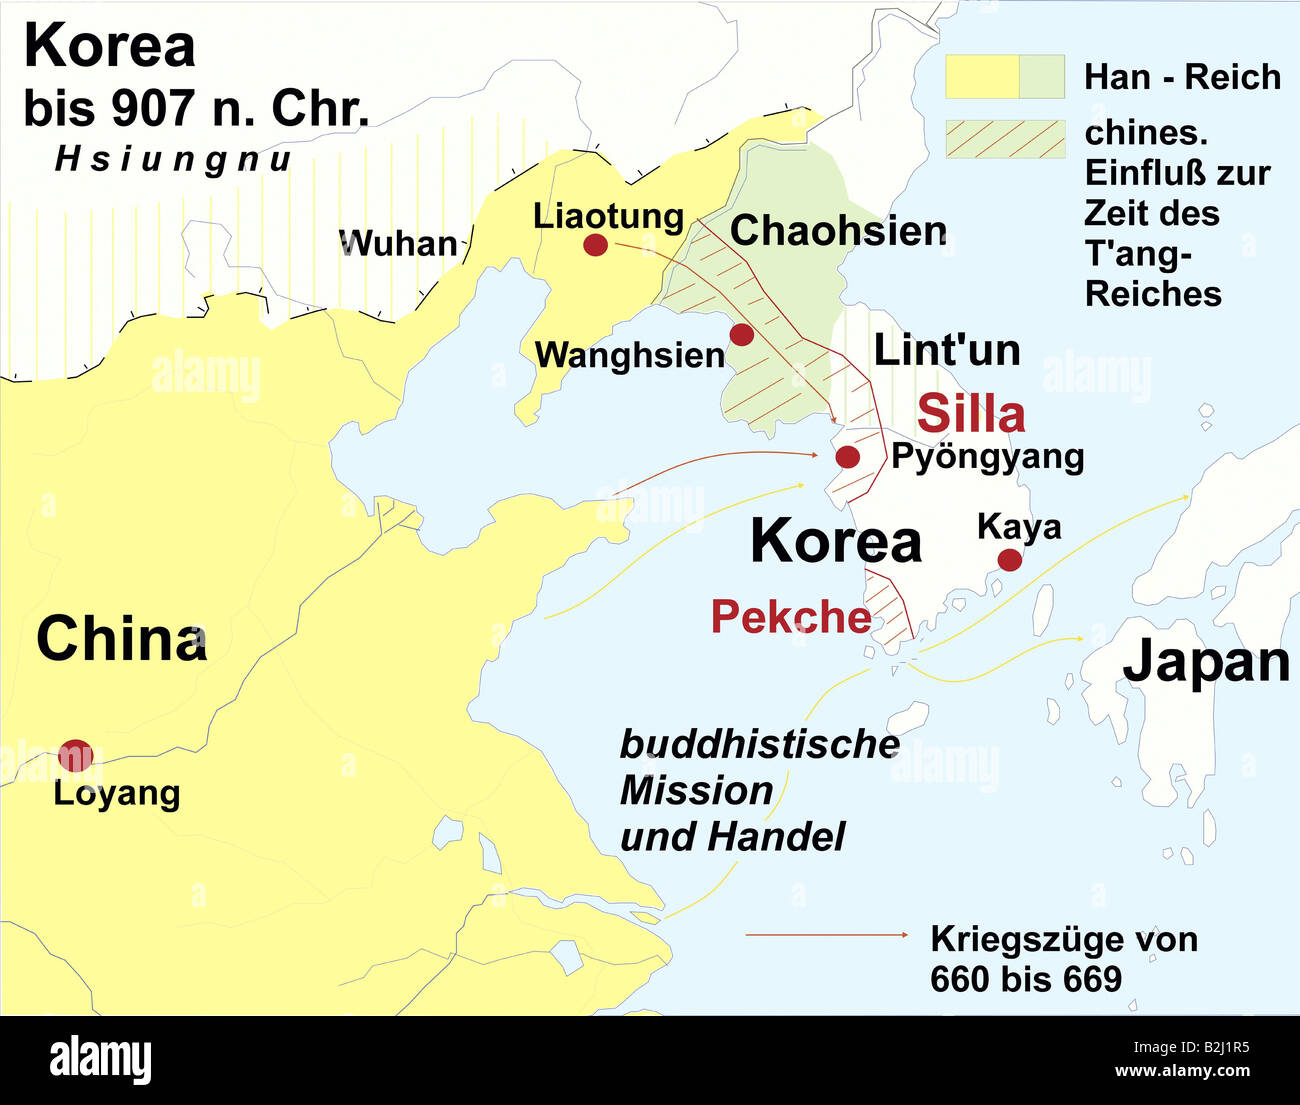 Geography travel carthography historical maps middle ages geography travel carthography historical maps middle ages korea till 907 historic han empire tang empire china asia sciox Gallery